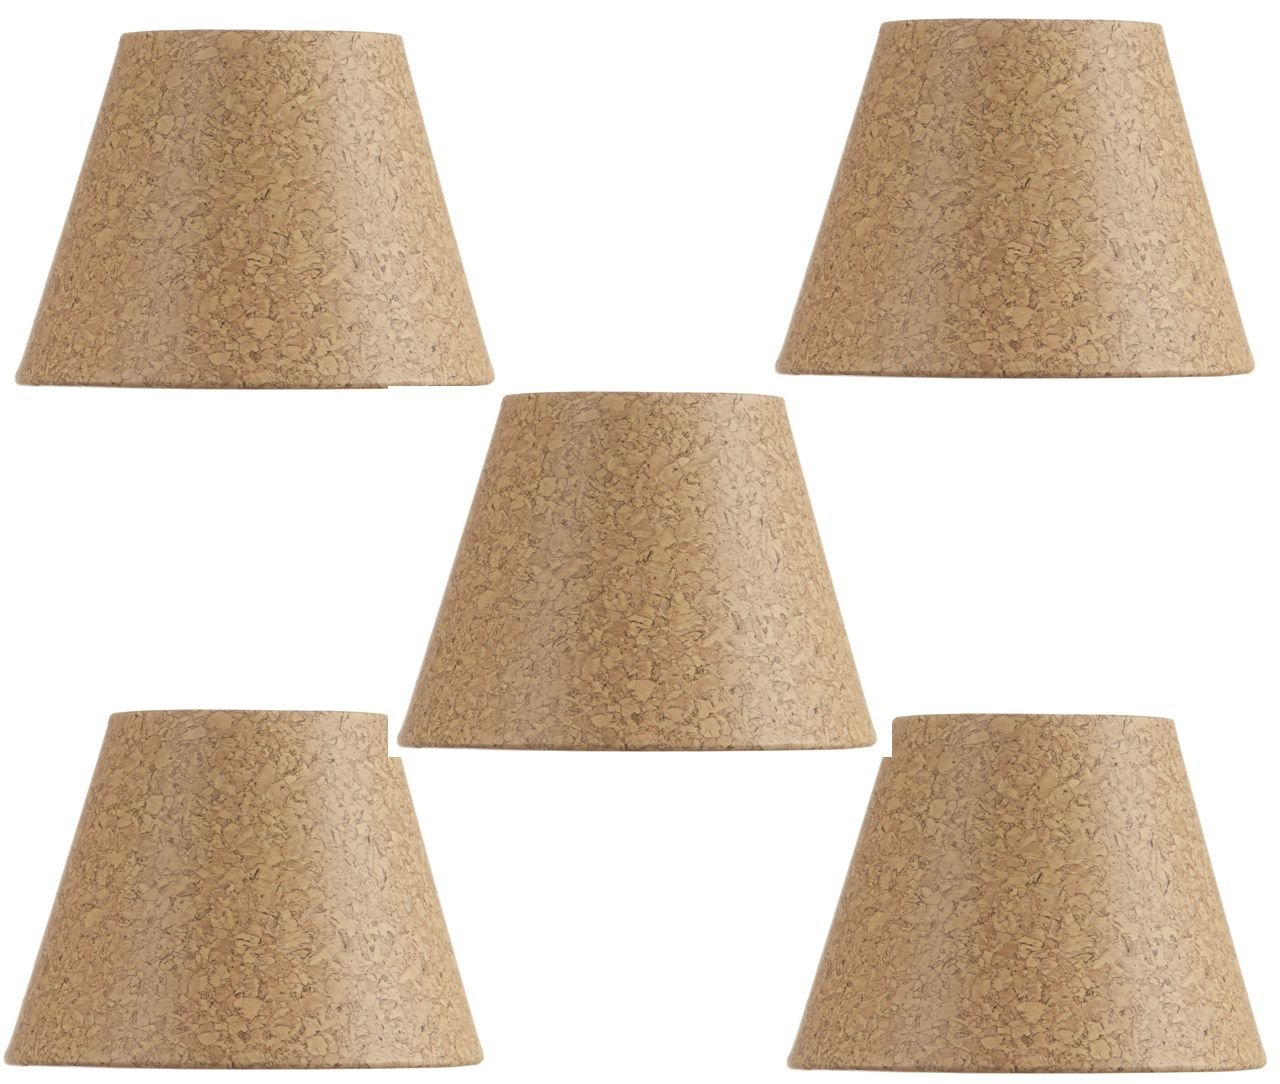 Cheap clip shades find clip shades deals on line at alibaba guide to shades mini chandelier shades clip on small lamp shades set of five natural cork aloadofball Gallery